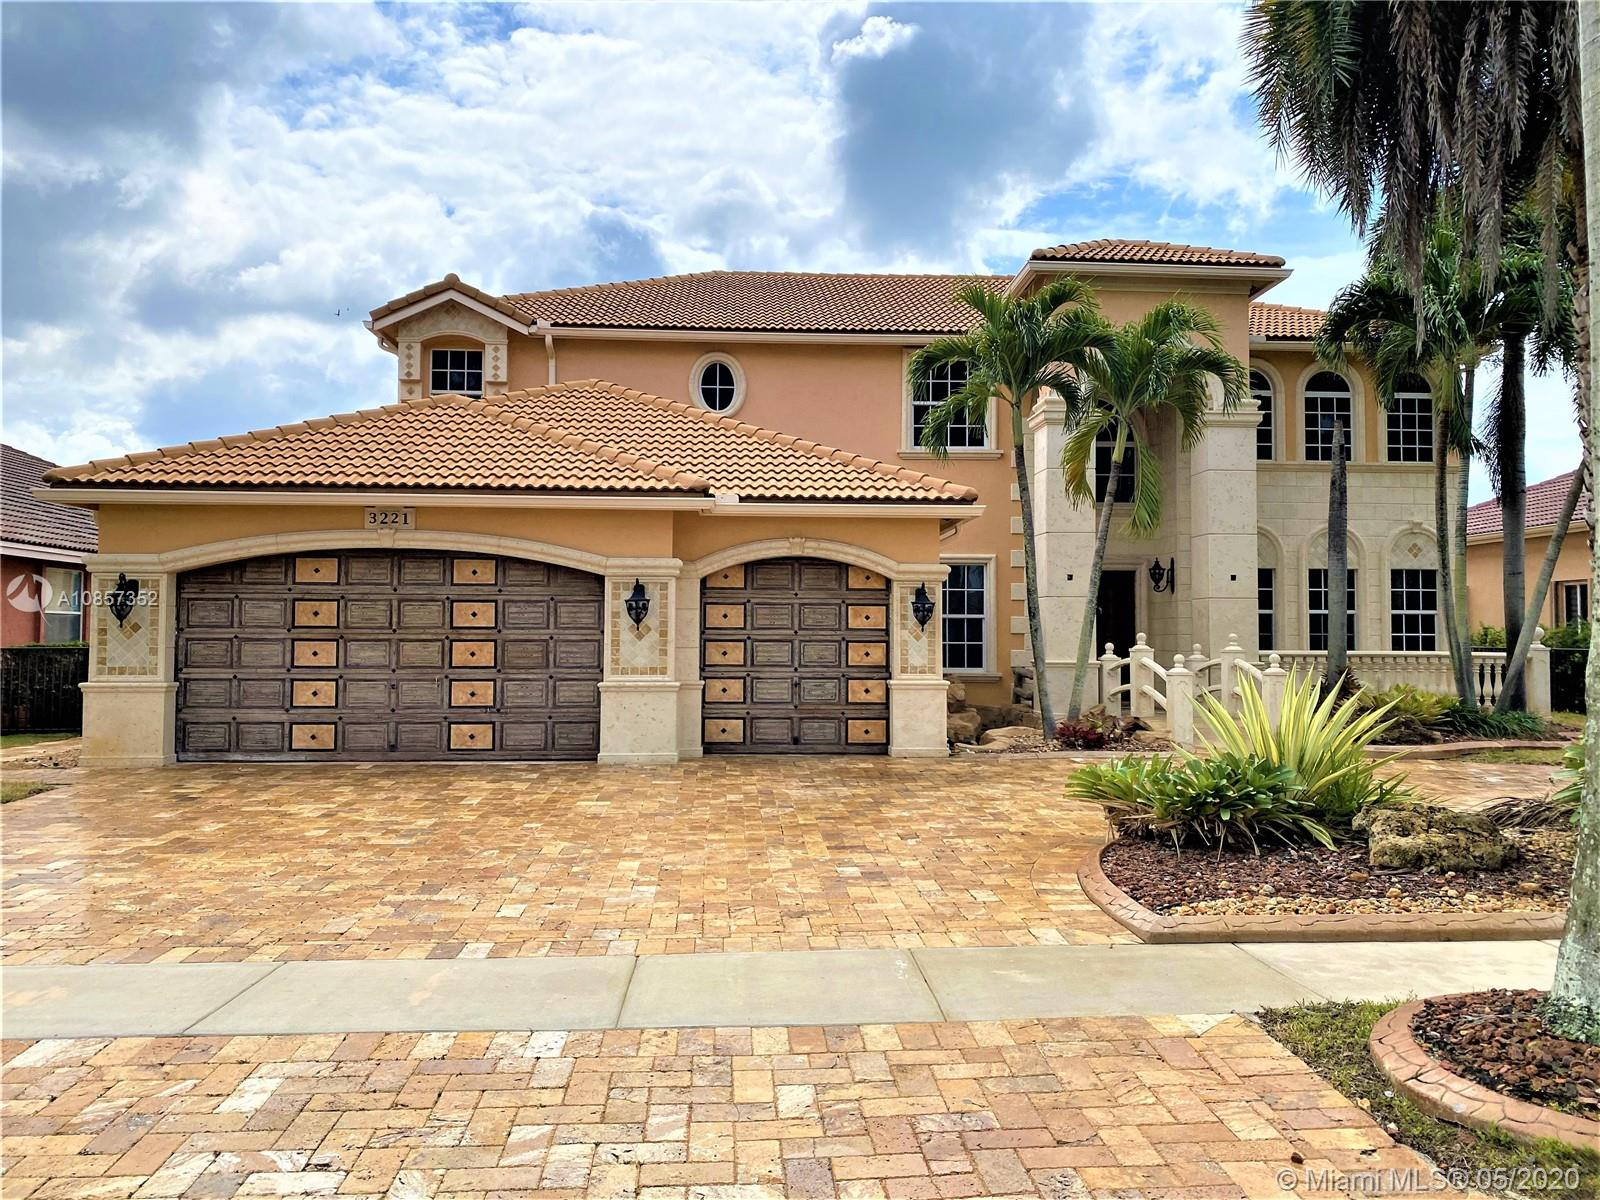 Don't miss this palace in sought after Sunset Lakes Community. Enjoy such amenities as gated entry, beautifully manicured green areas, access to clubhouse, pool and recreation rooms and proximity to major roadways and shopping. Magnificent rock grotto with slide and waterfall encloses a private hot tub.  Pool has been recently plastered and looks amazing! Travertine pavers throughout exterior. The potential is endless and needs only your creative and design touches to finish this remodel. Selling As-IS. Buyer to assume all open permits.